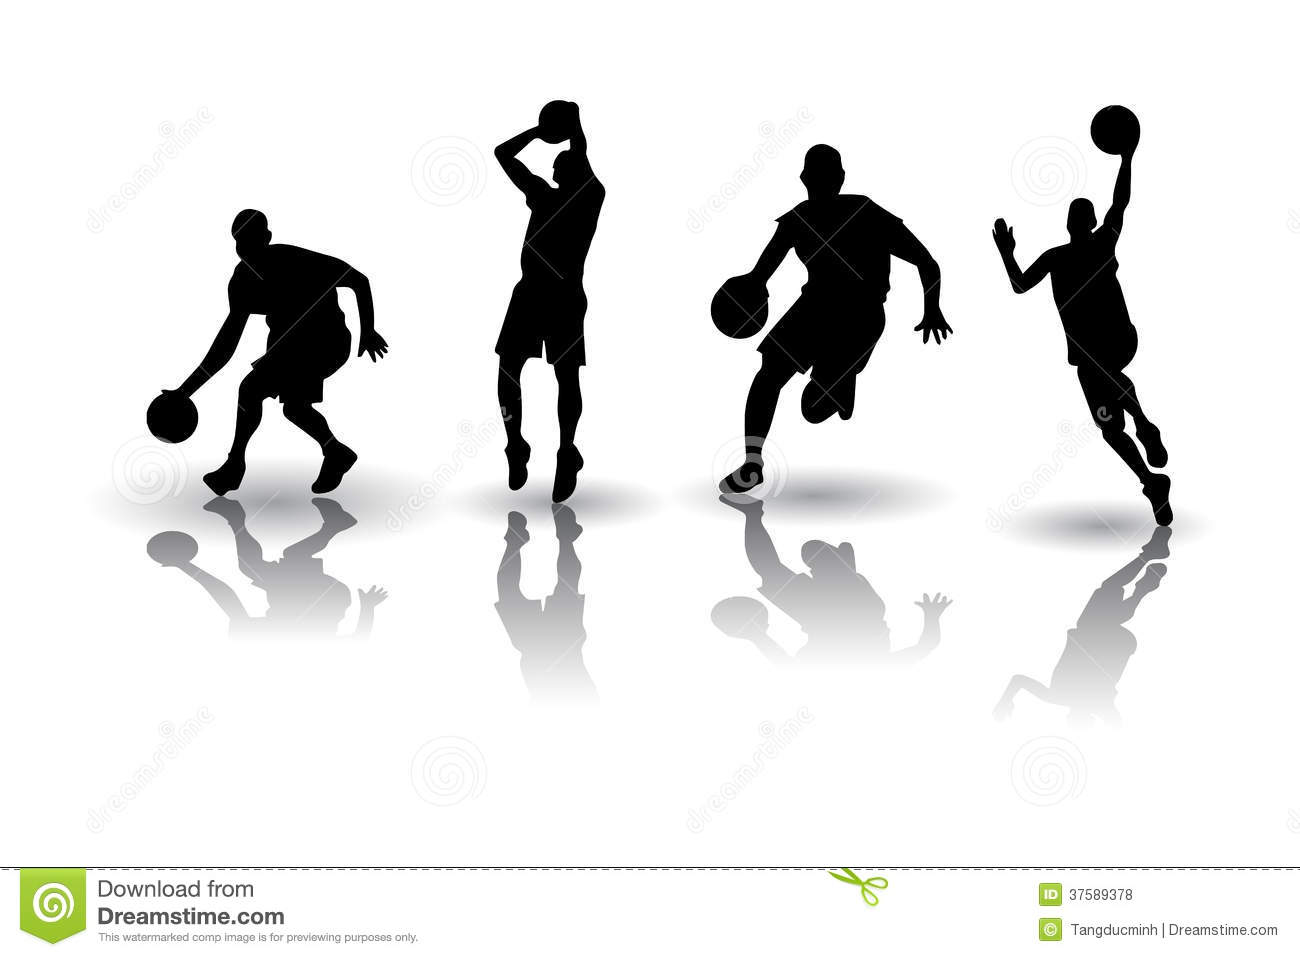 Abstract Triangle Volleyball Player Silhouette Stock: Basketball Silhouette Vectors Royalty Free Stock Photos